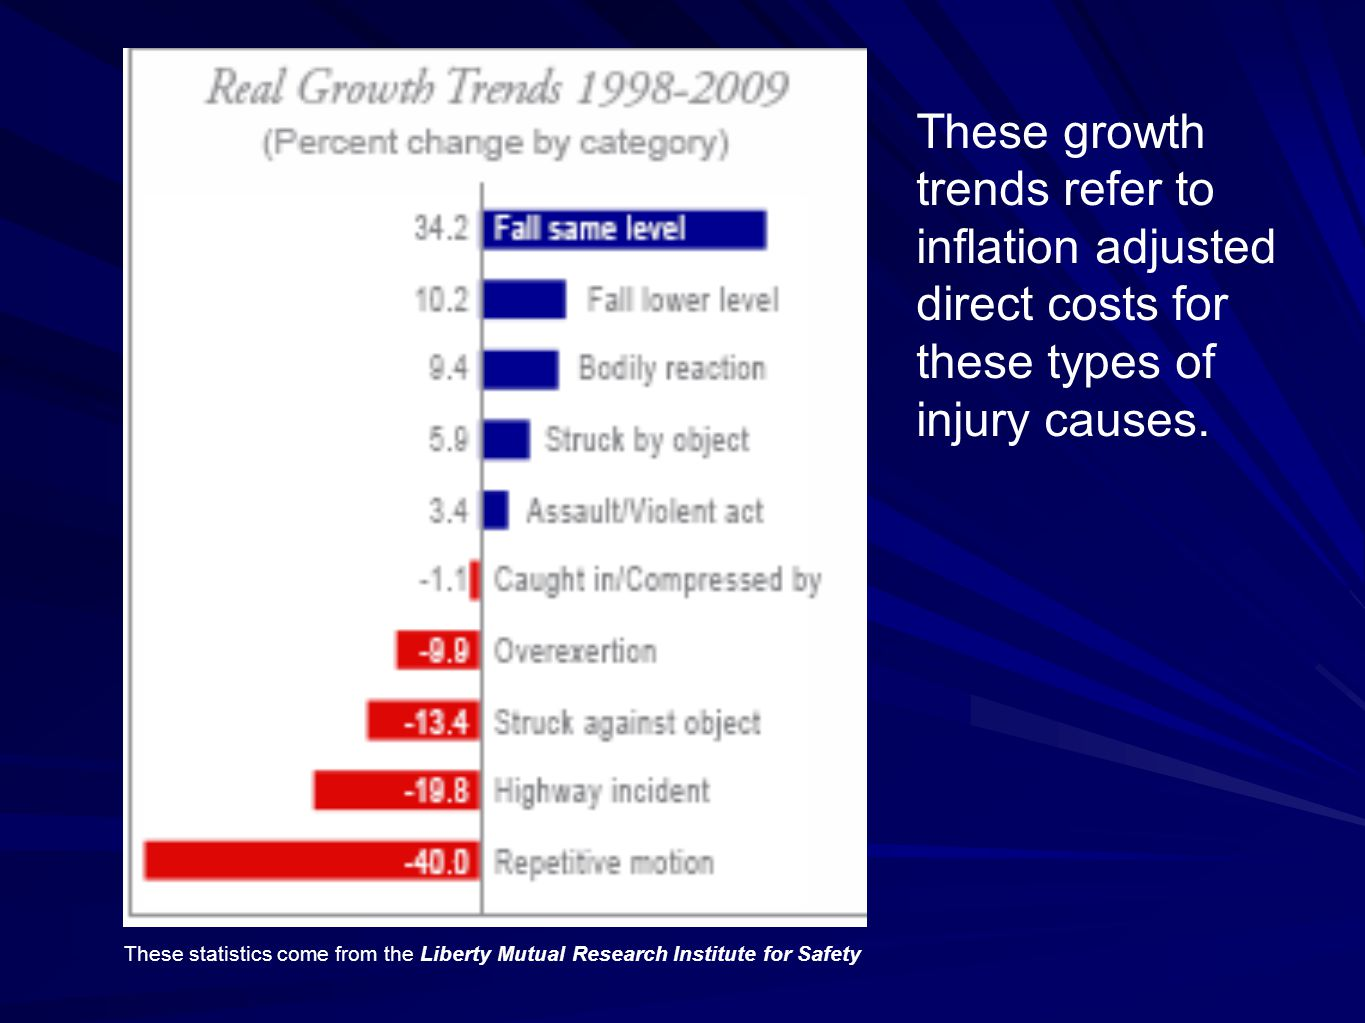 These growth trends refer to inflation adjusted direct costs for these types of injury causes. These statistics come from the Liberty Mutual Research